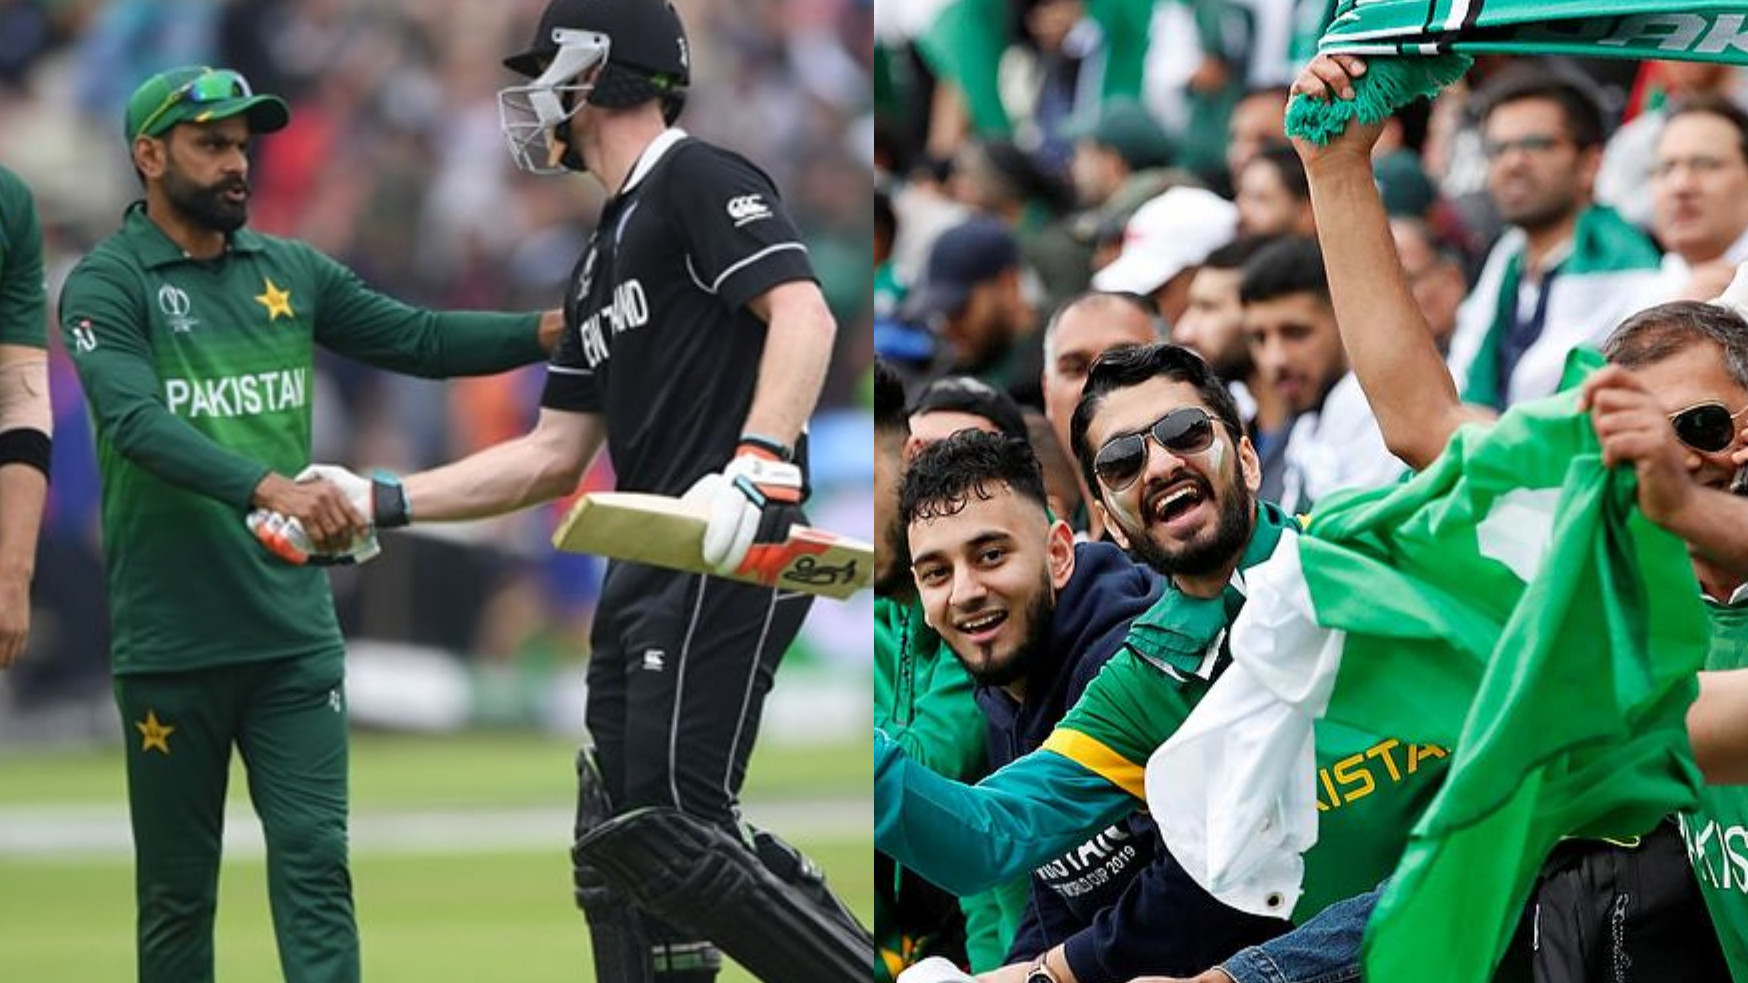 PAK v NZ 2021: Pakistan to allow 25% crowd for upcoming New Zealand series